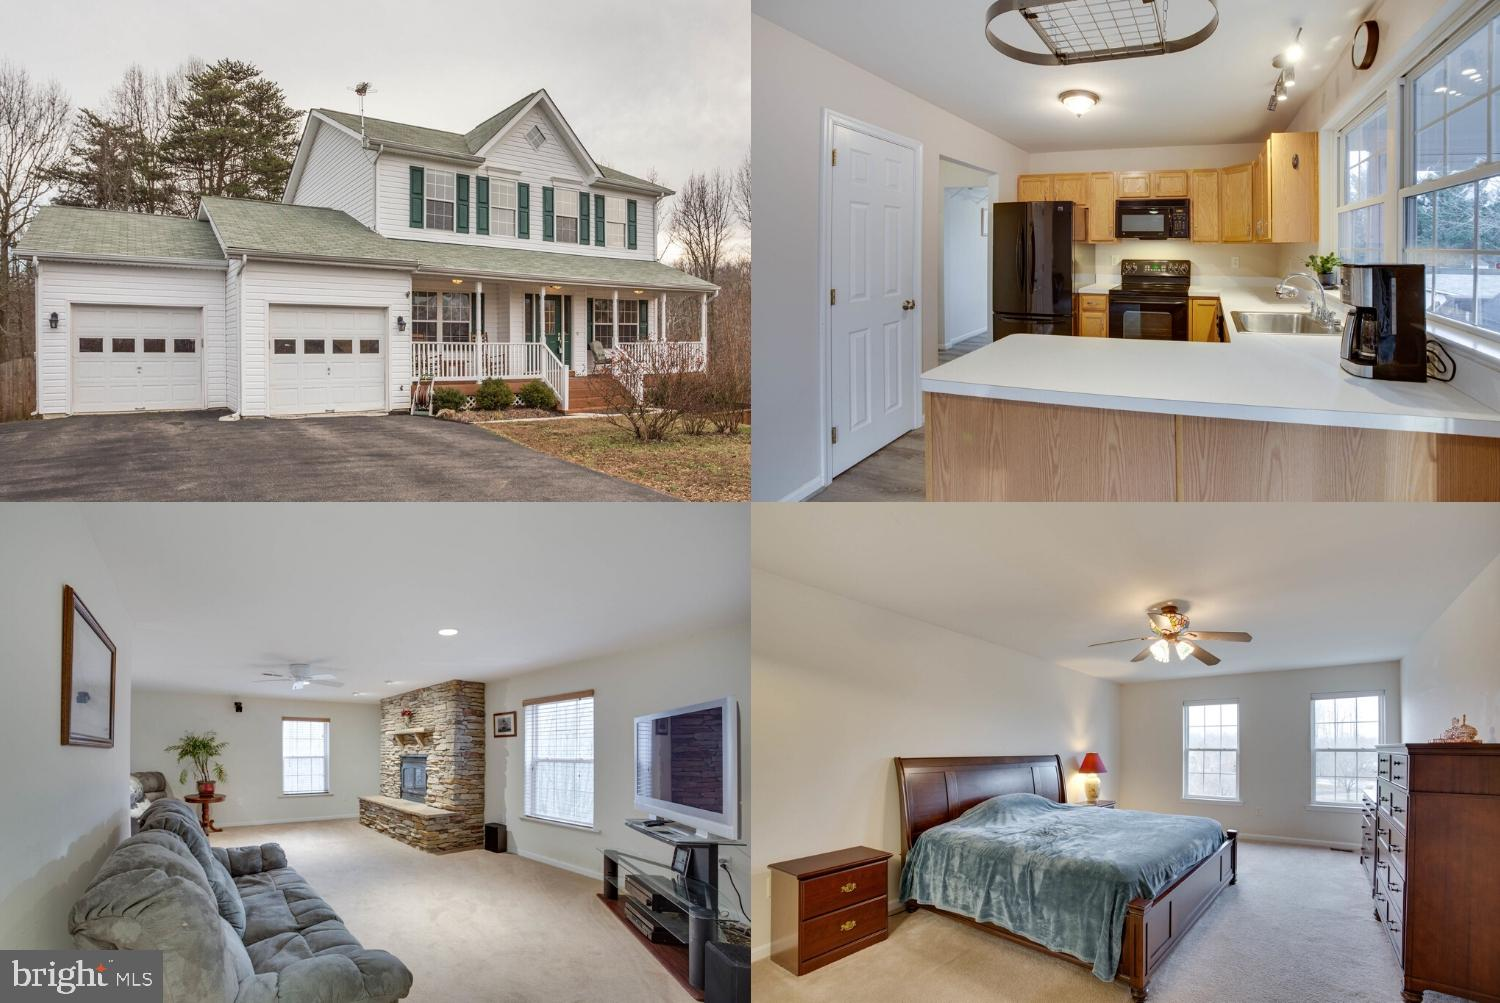 Lovely Colonial Home on private 1 acre lot. This home boasts beautiful wood floors throughout the ma